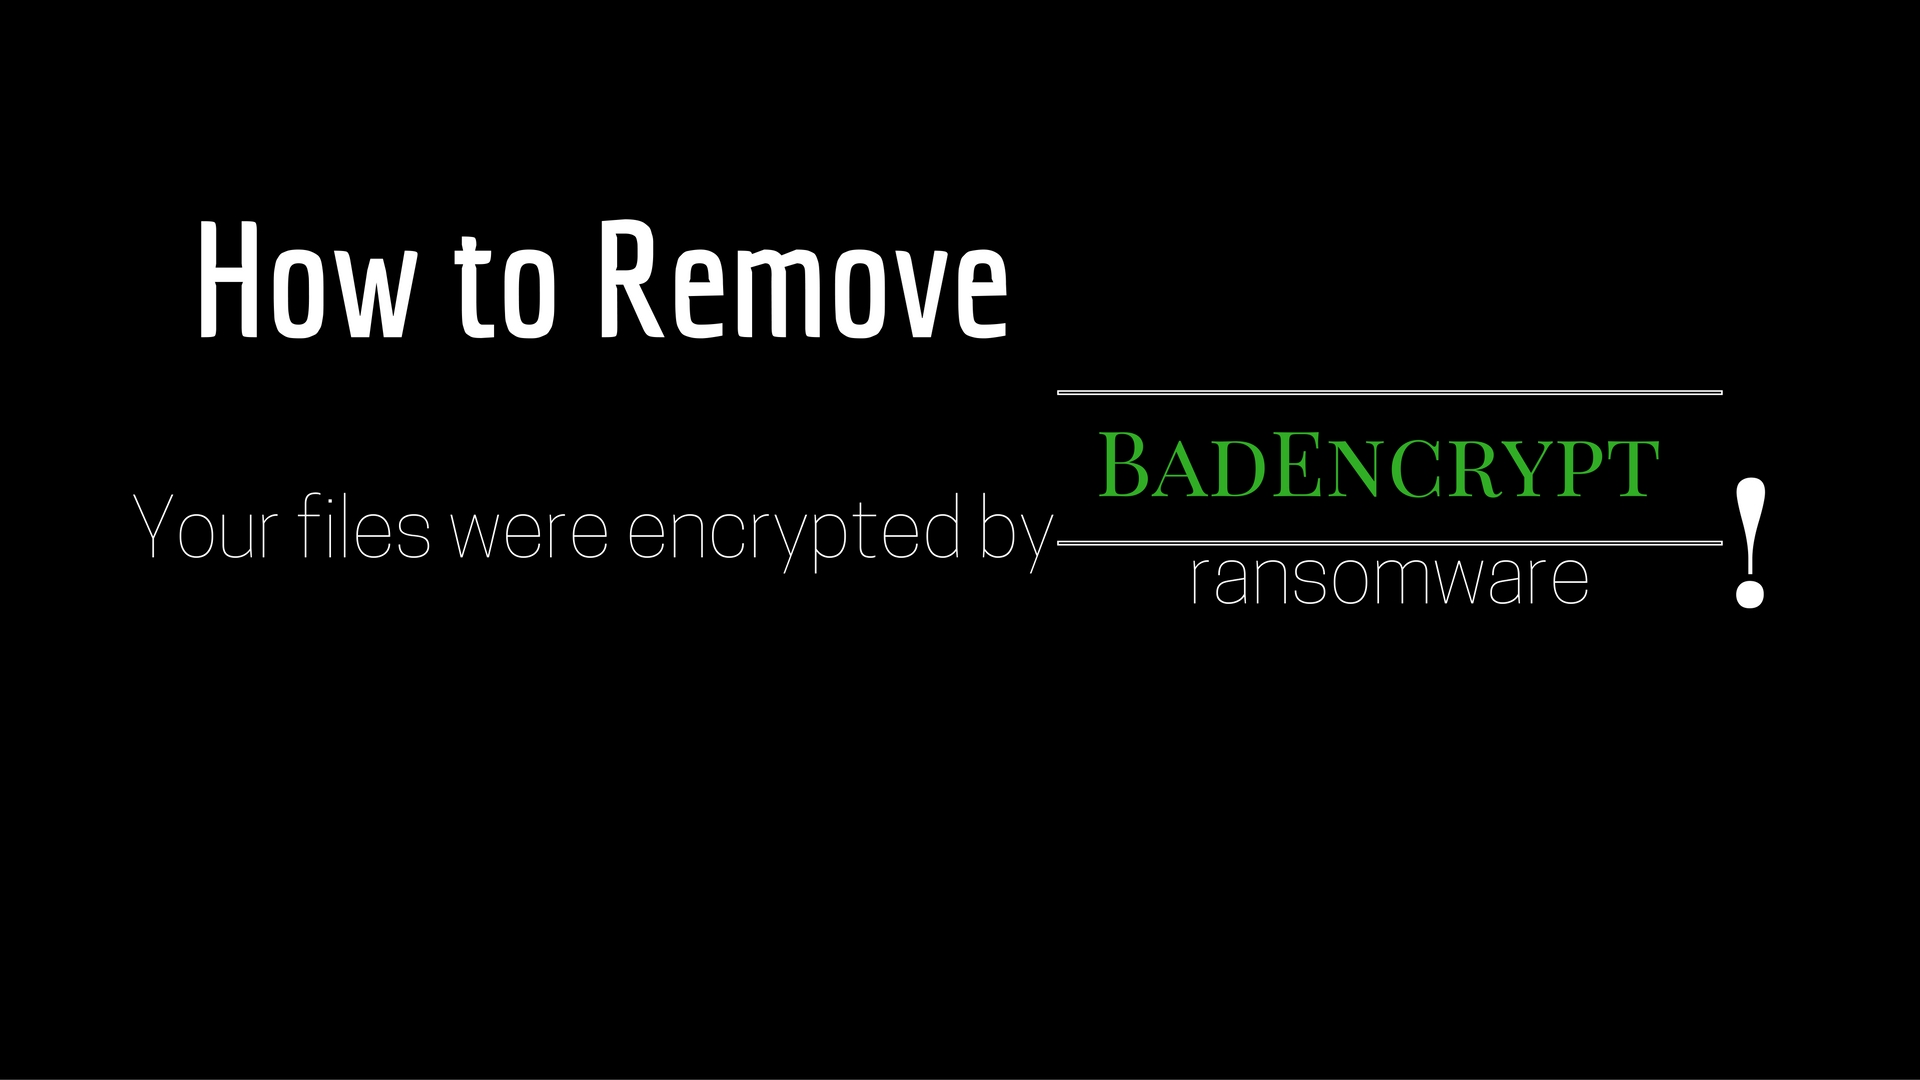 how-to-Remove-badencrypt-ransomware-.bript-malicious-extension-bestsecuritysearch